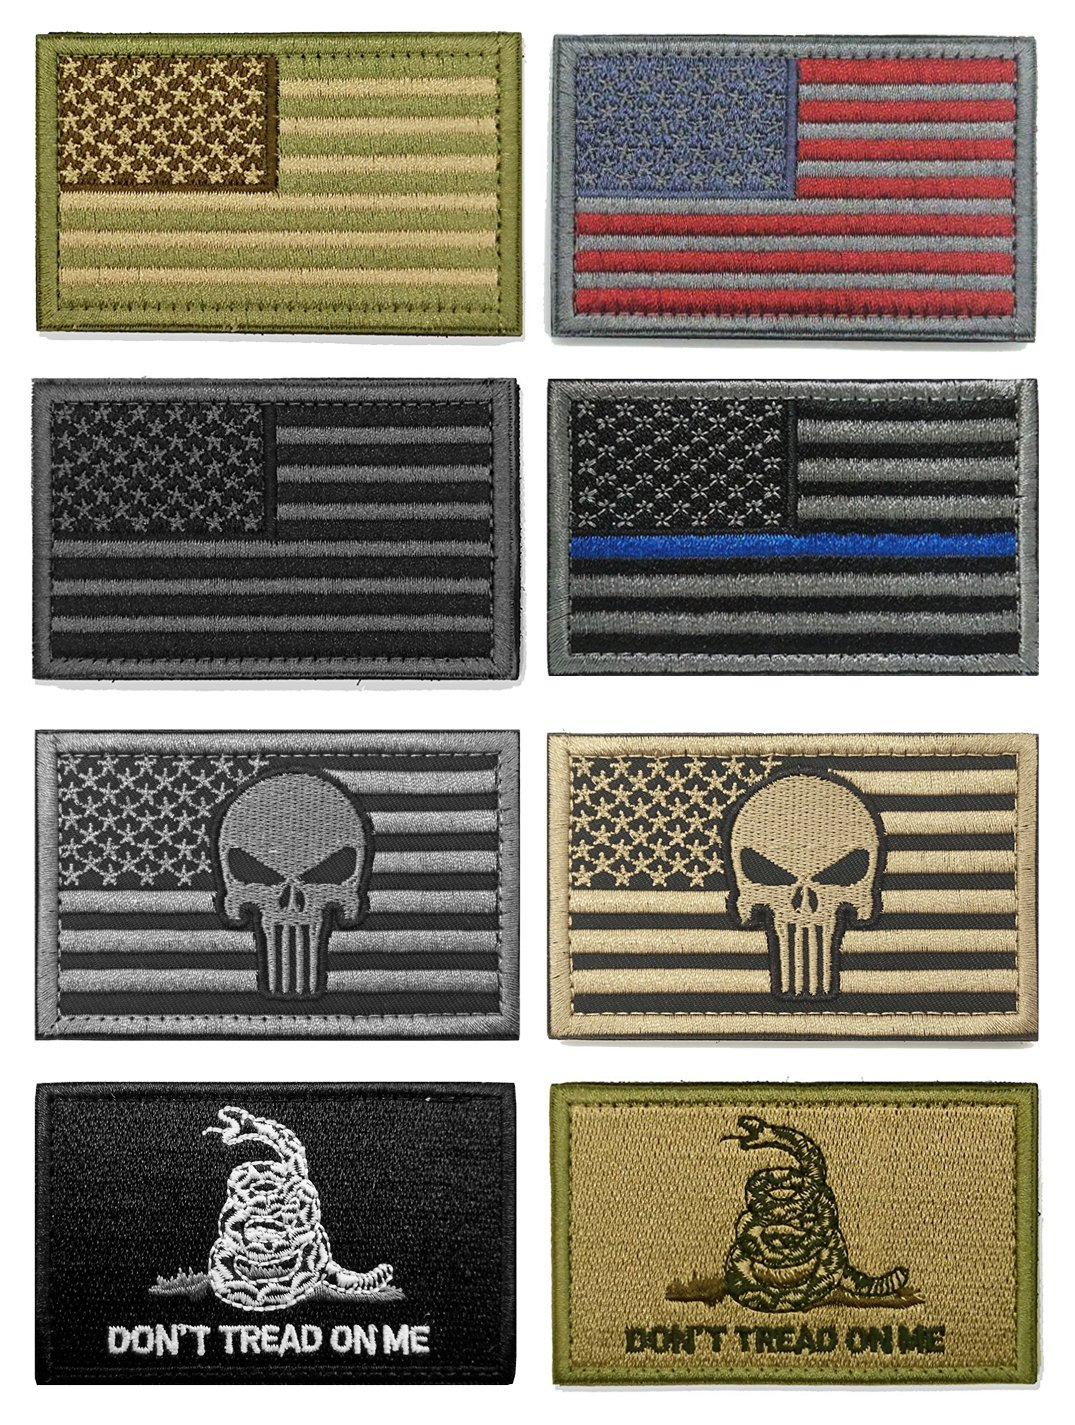 WZT Bundle 8 pieces american flag Tactical Military Morale Patch Set